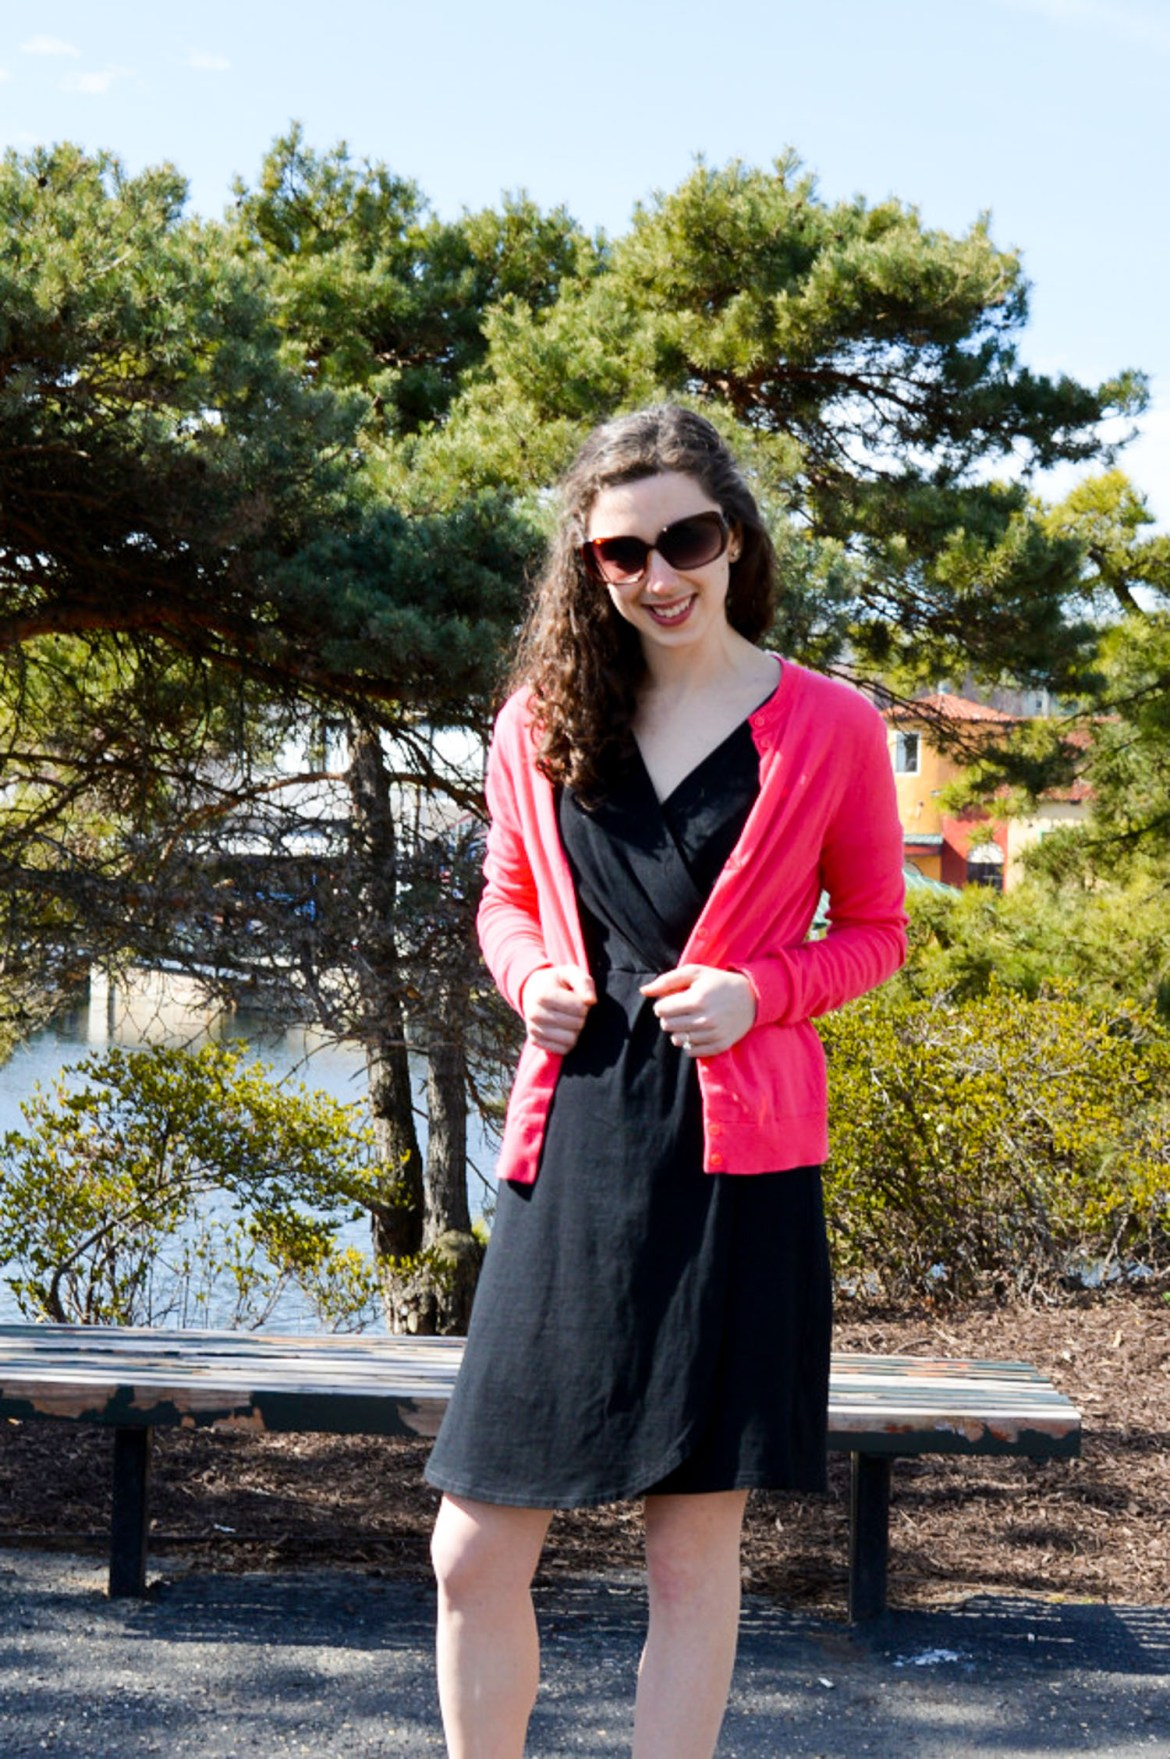 Black dress + pink cardigan | Outfit ideas from Hunting for Pink Flamingos